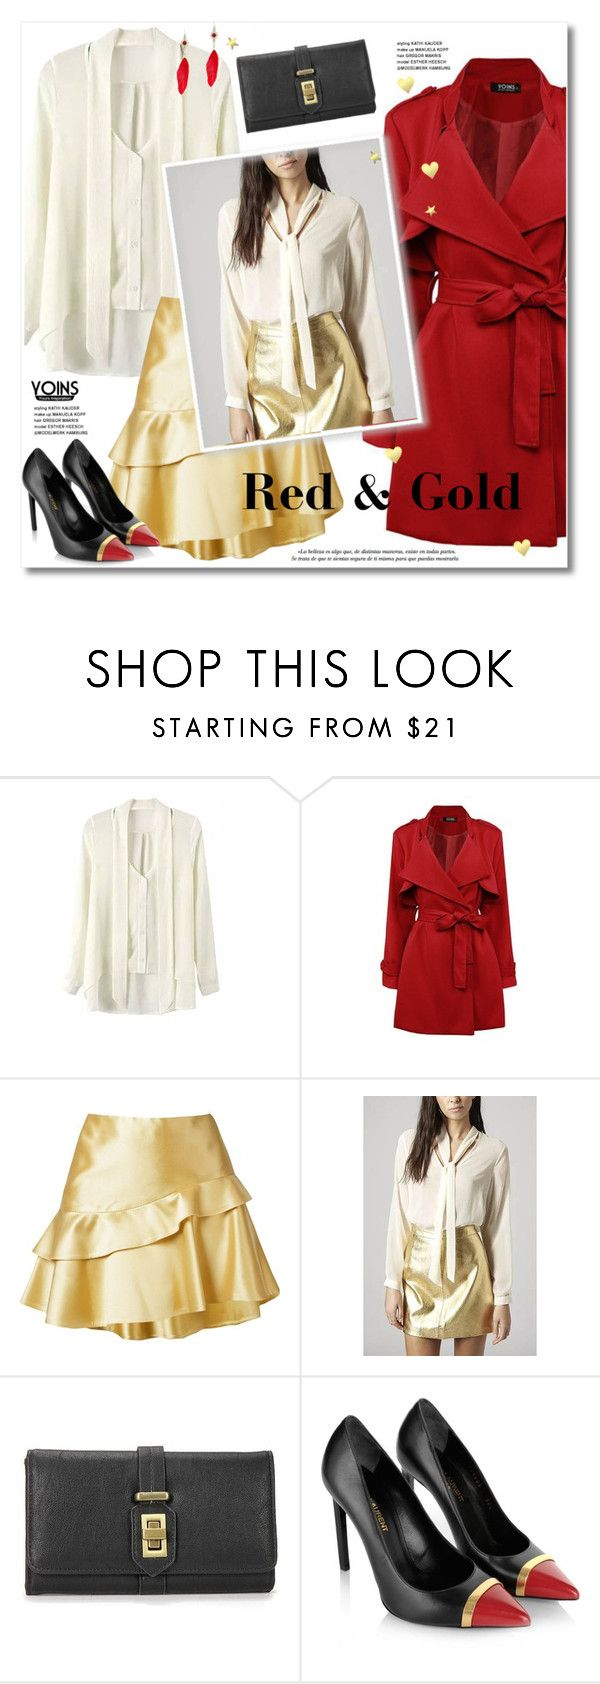 """""""Red & gold"""" by svijetlana ❤ liked on Polyvore featuring Martha Medeiros, Yves Saint Laurent, women's clothing, women, female, woman, misses, juniors, polyvoreeditorial and RedAndGold"""